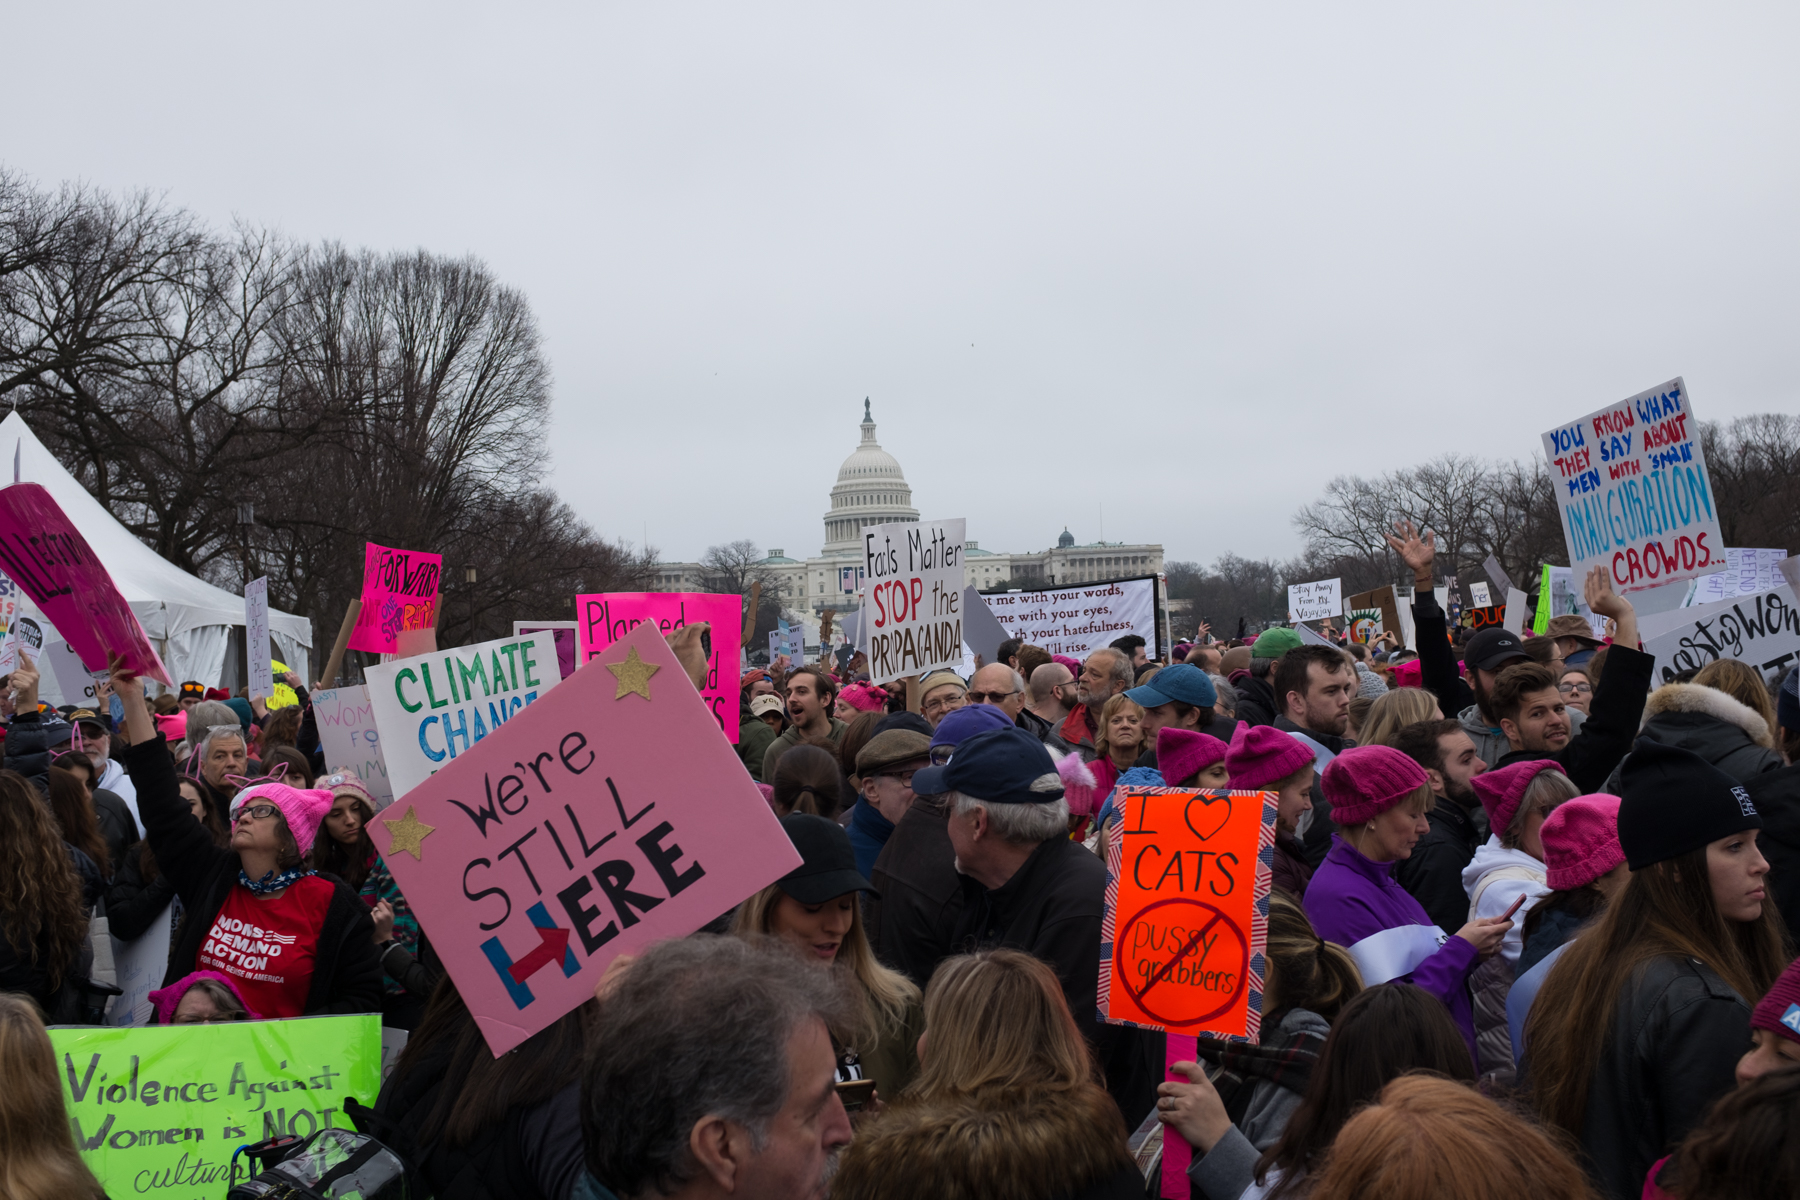 Schuetz_WomensMarchonWashington-4.jpg